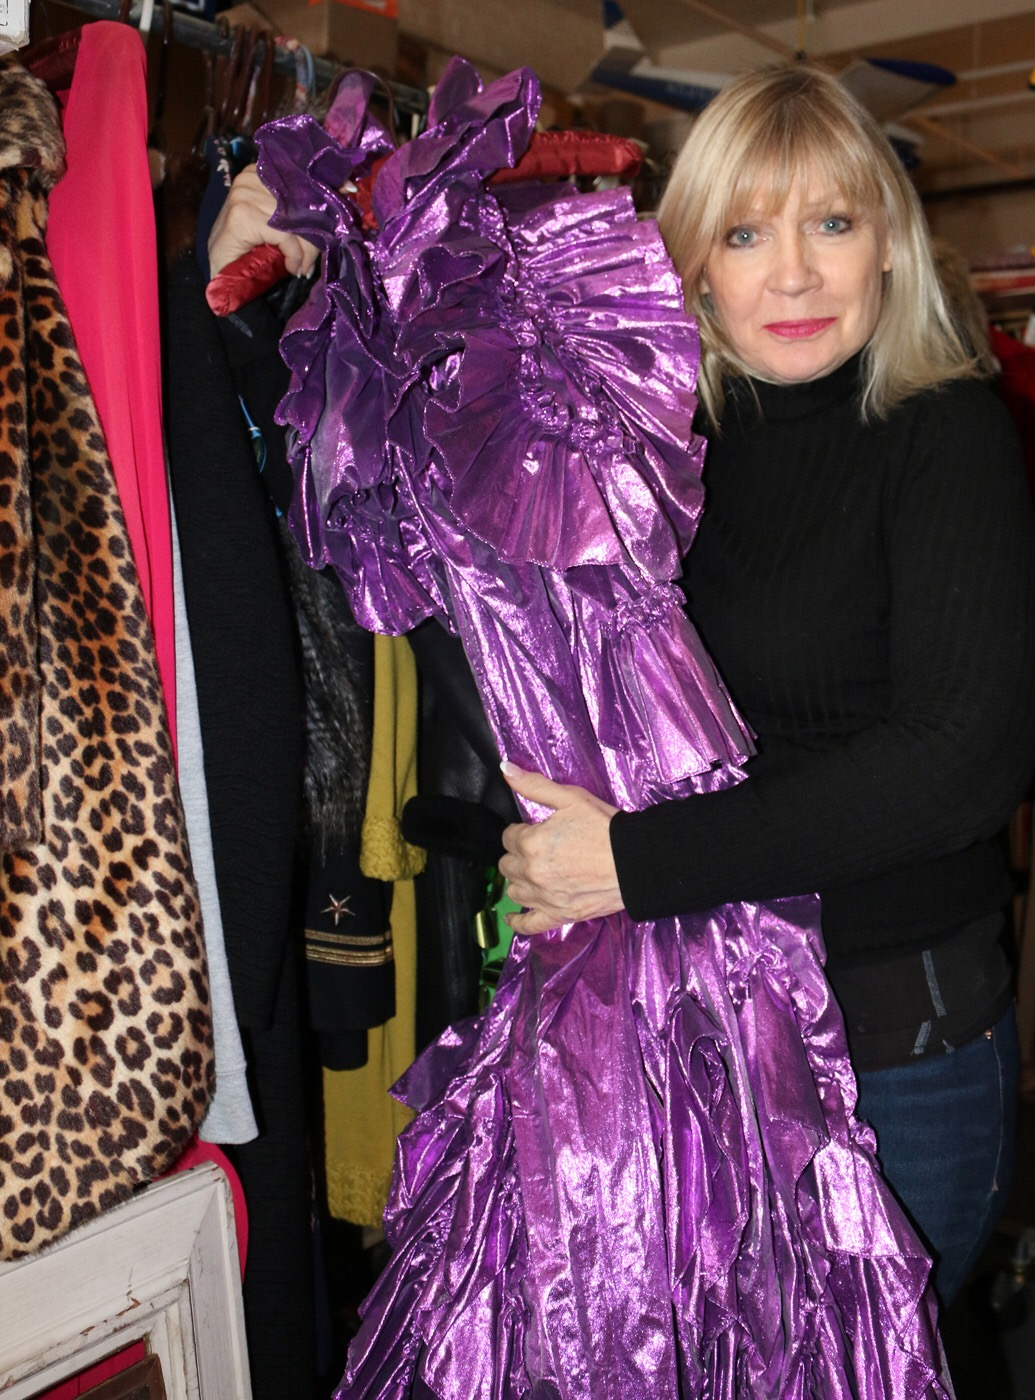 Lucille poses with a dazzling dress in her favorite color, purple.